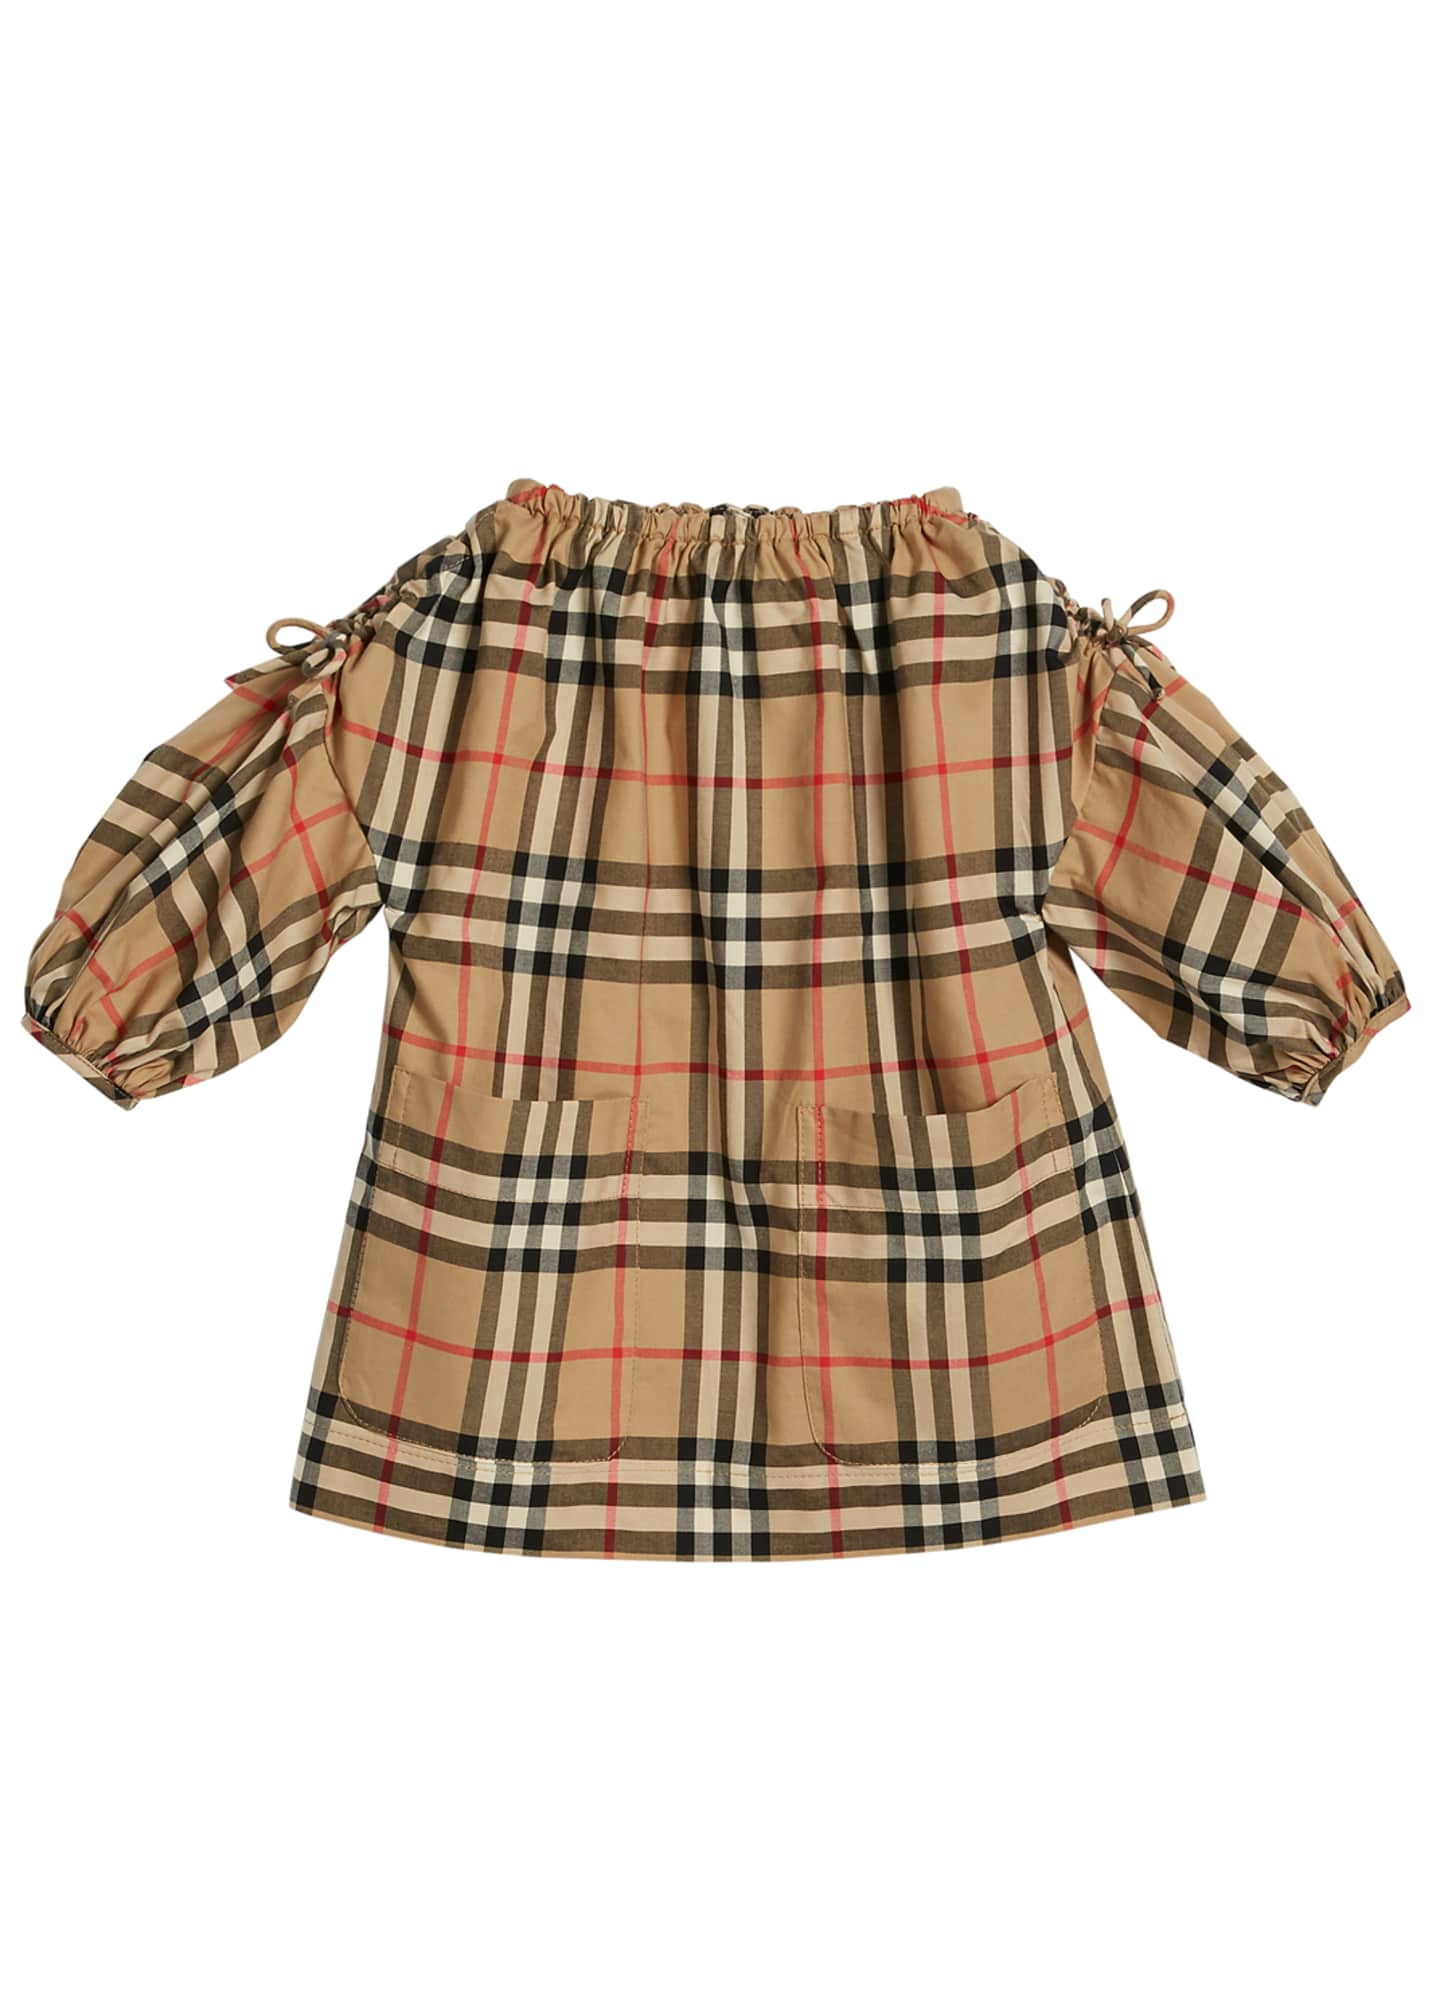 Burberry Alenka Archive Check Long-Sleeve Dress, Size 6M-2